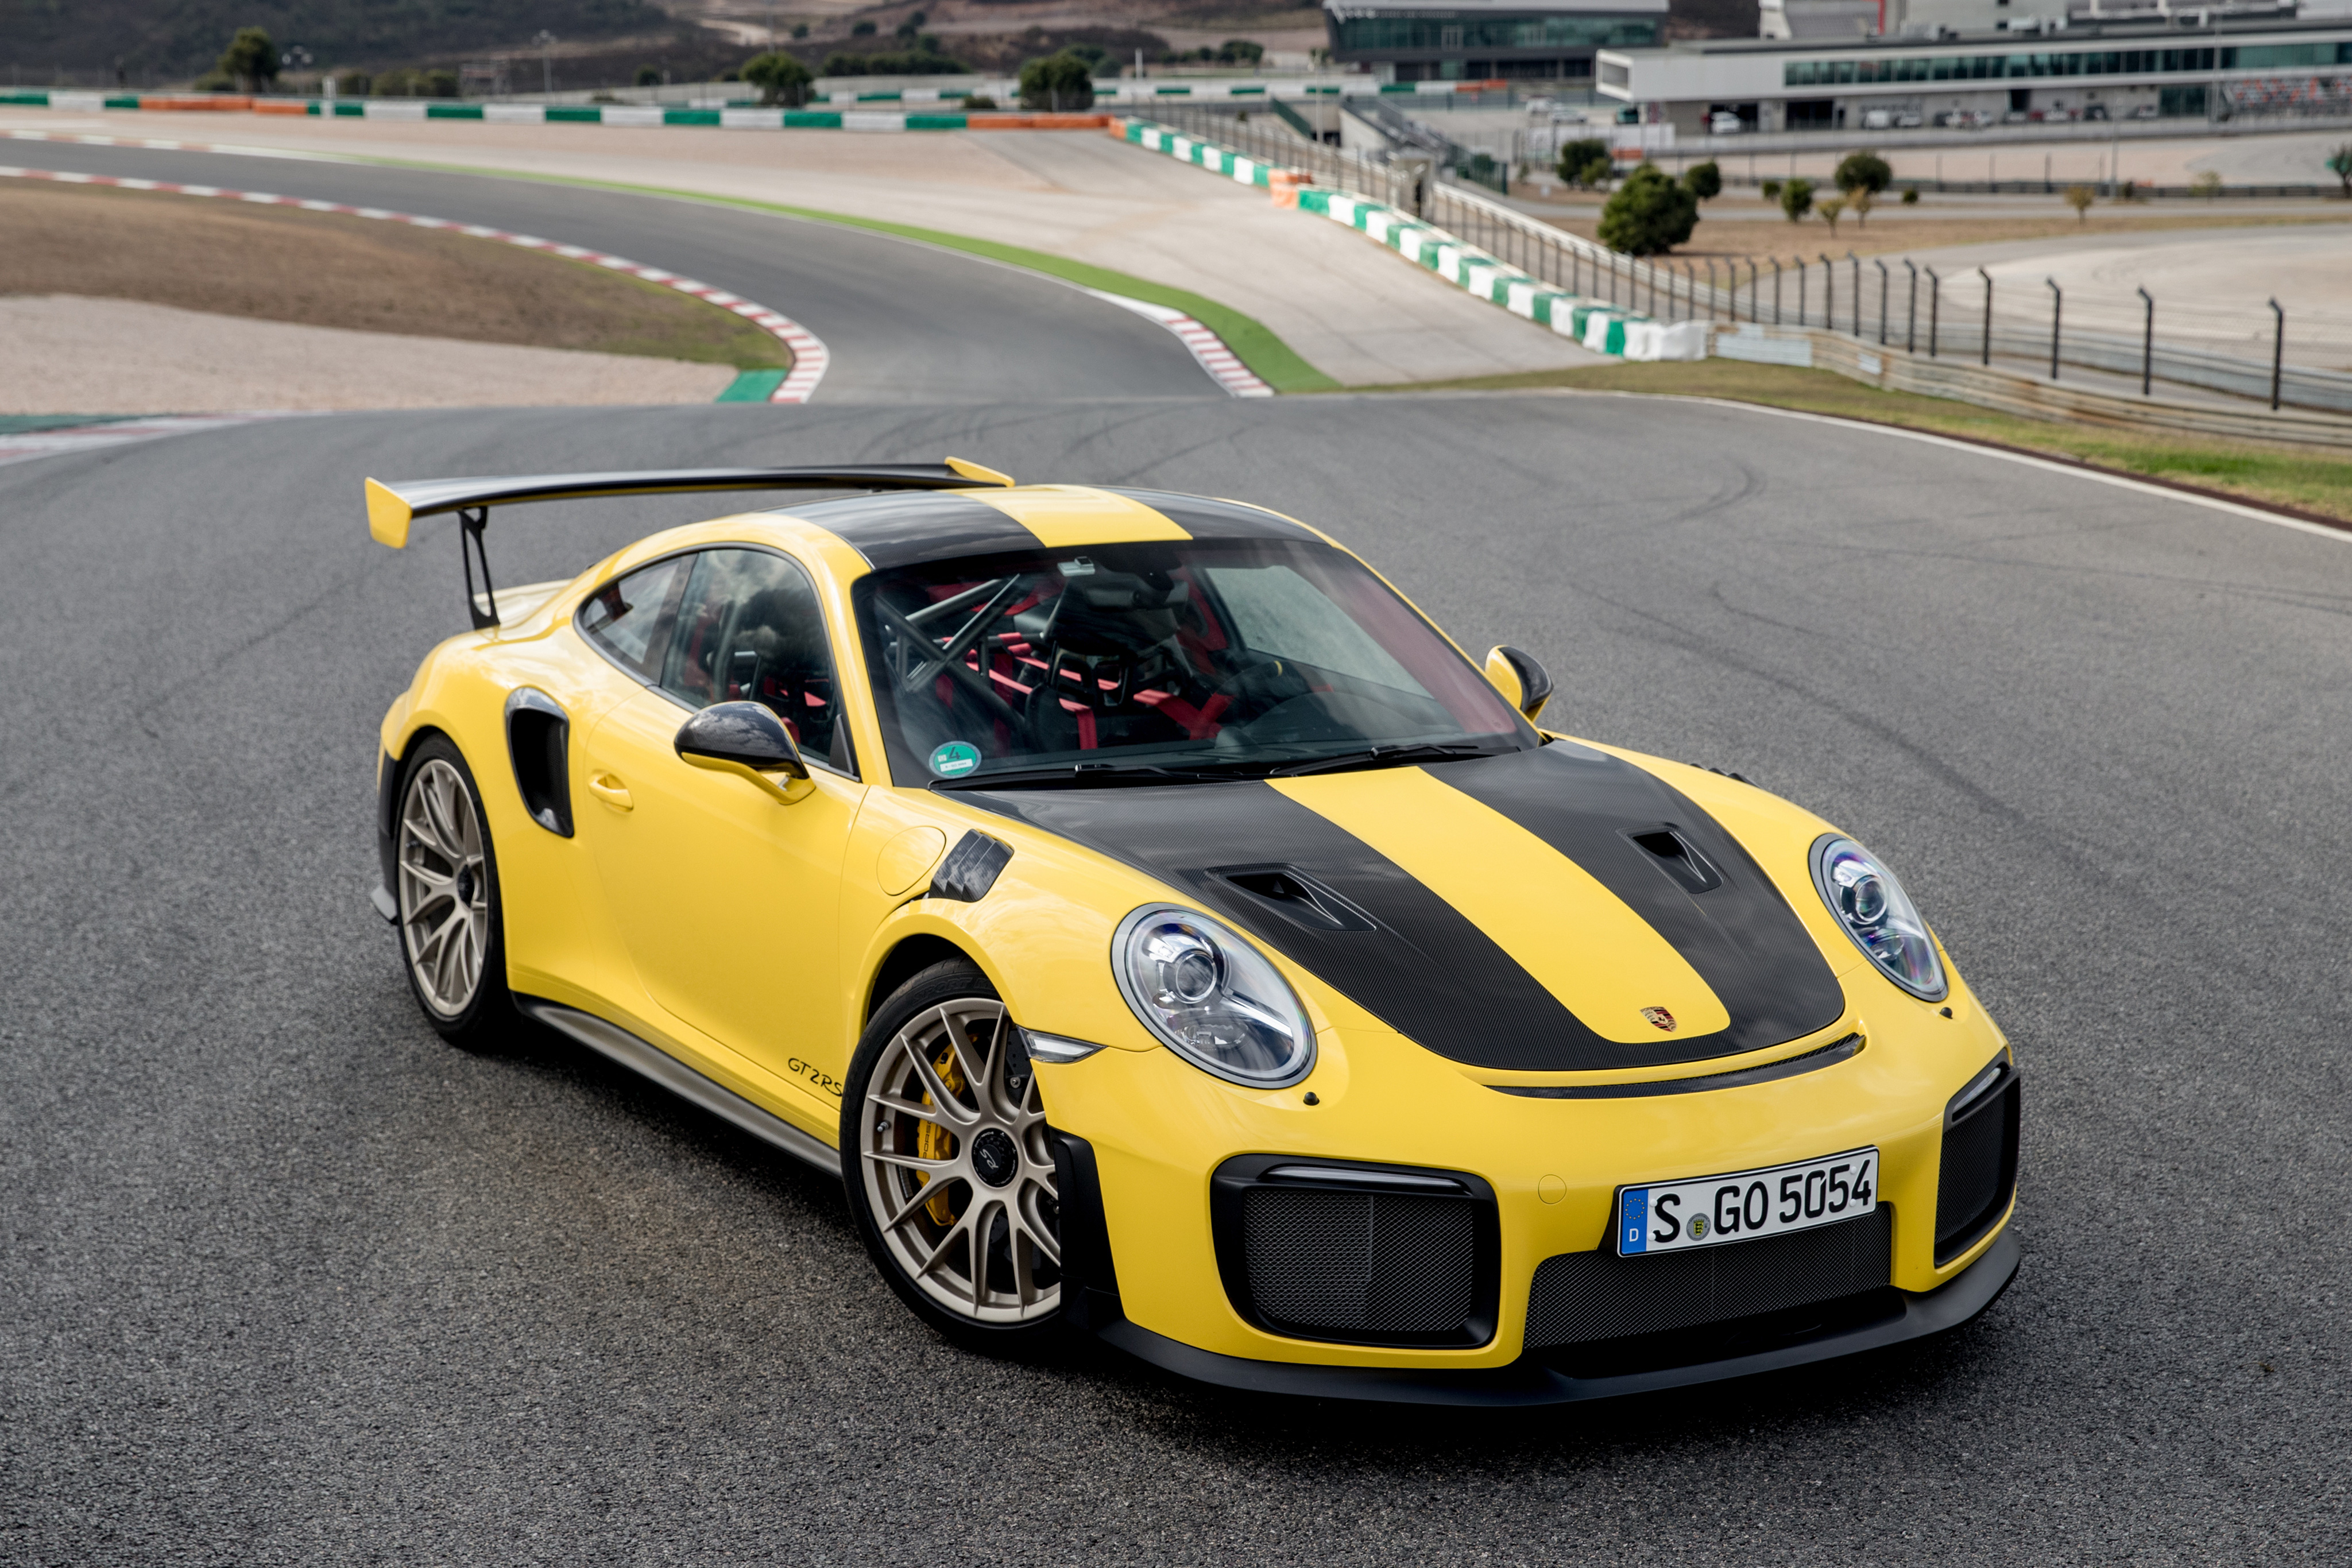 1920x1080 Porsche 911 GT2 RS Sports Laptop Full HD 1080P